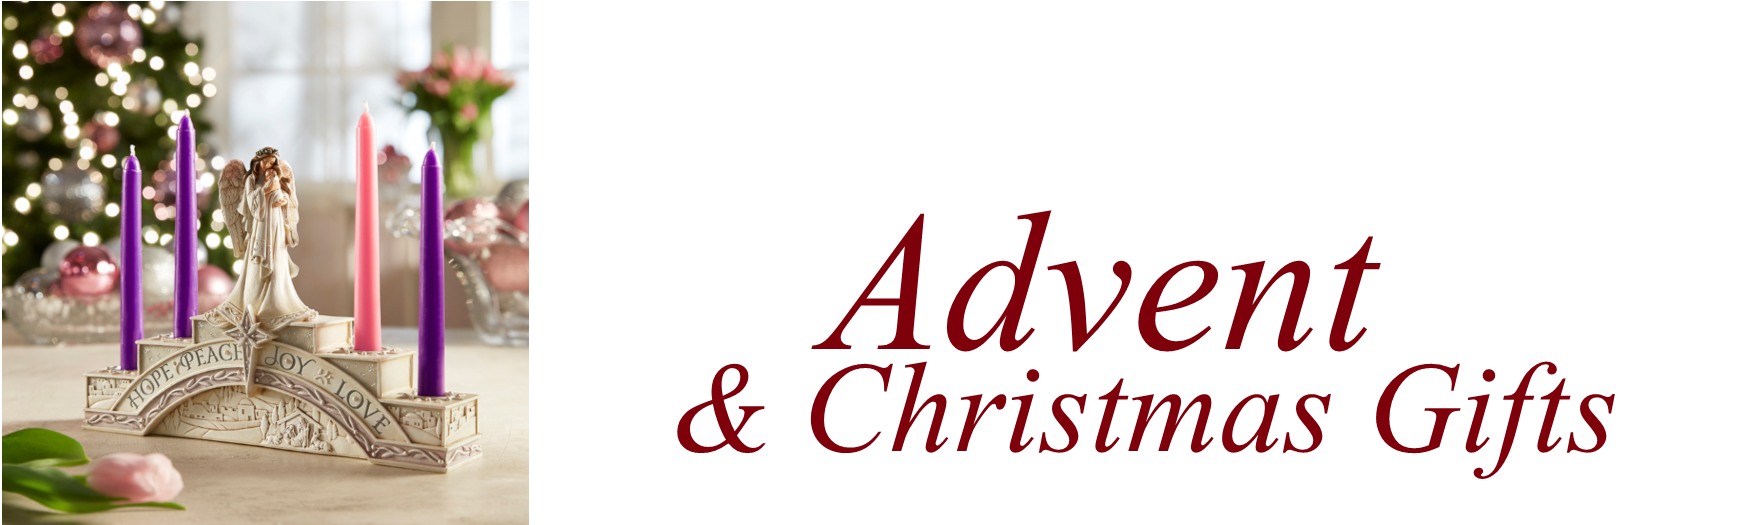 Advent & Christmas